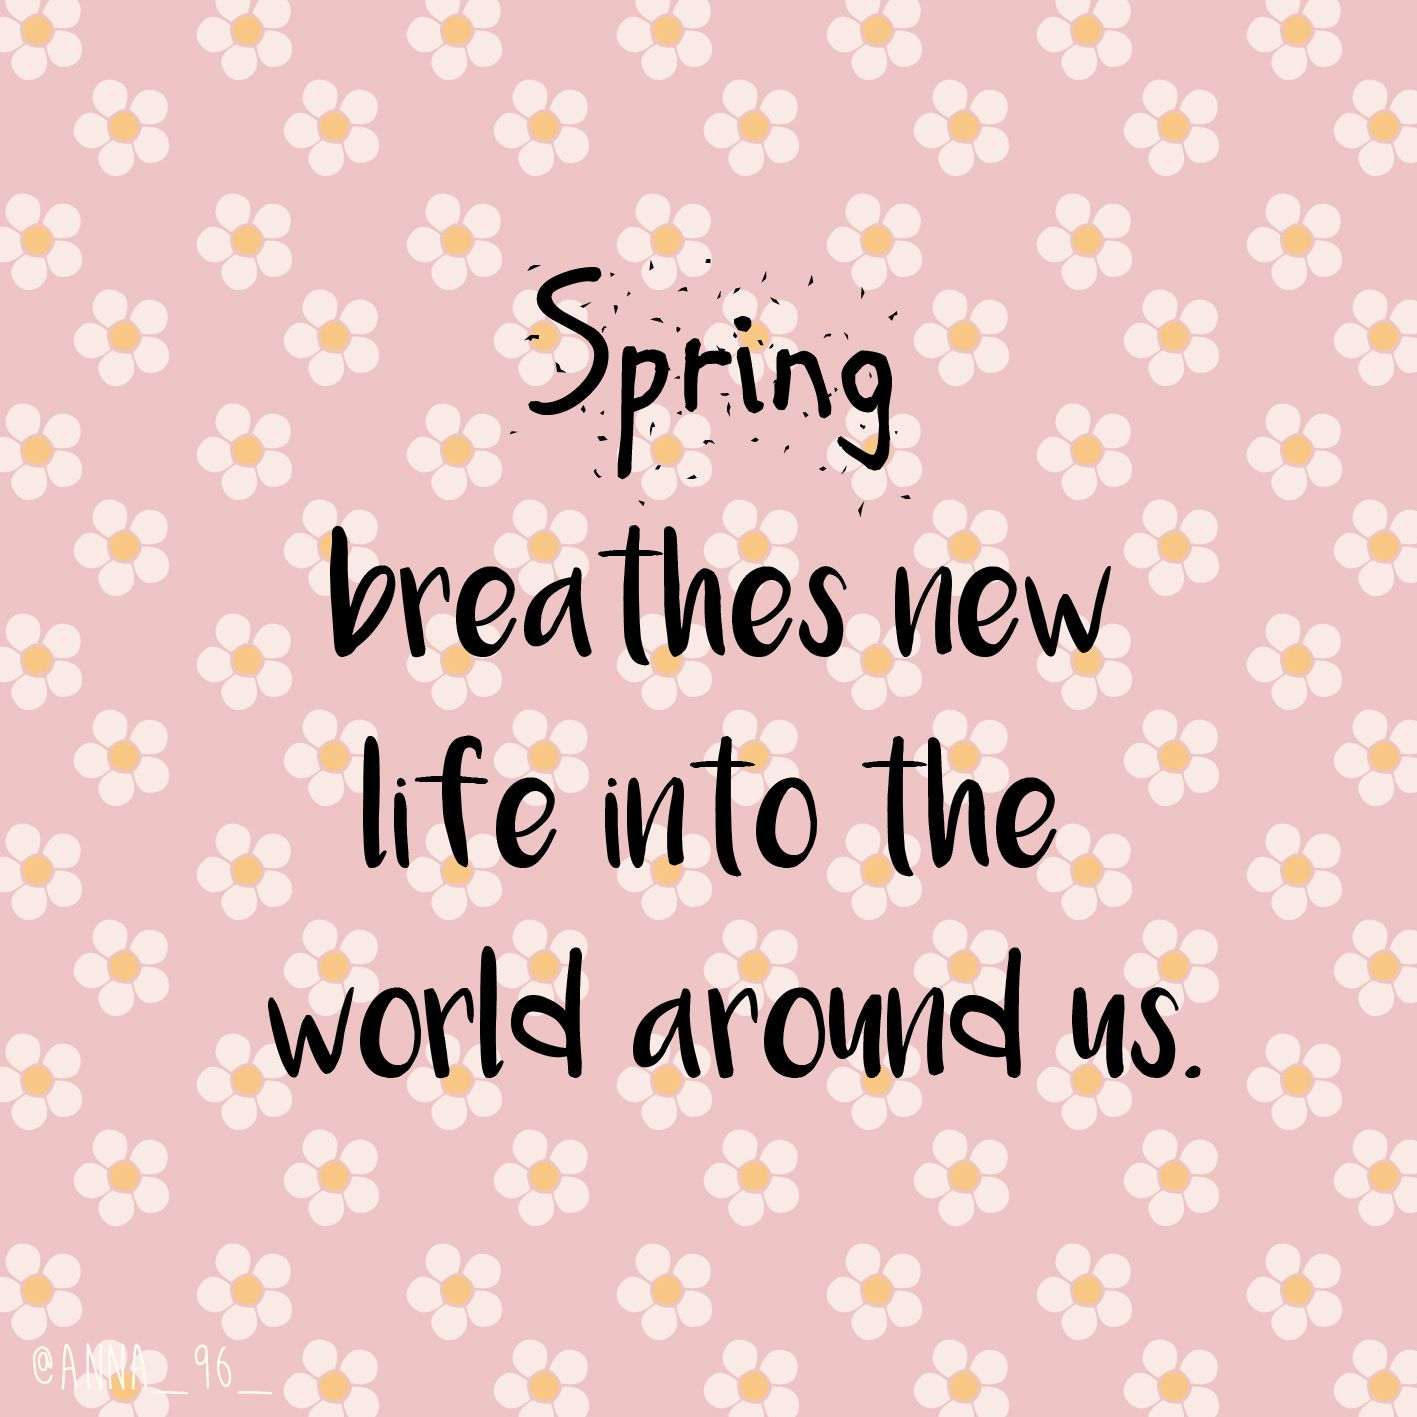 Spring quote 🌸